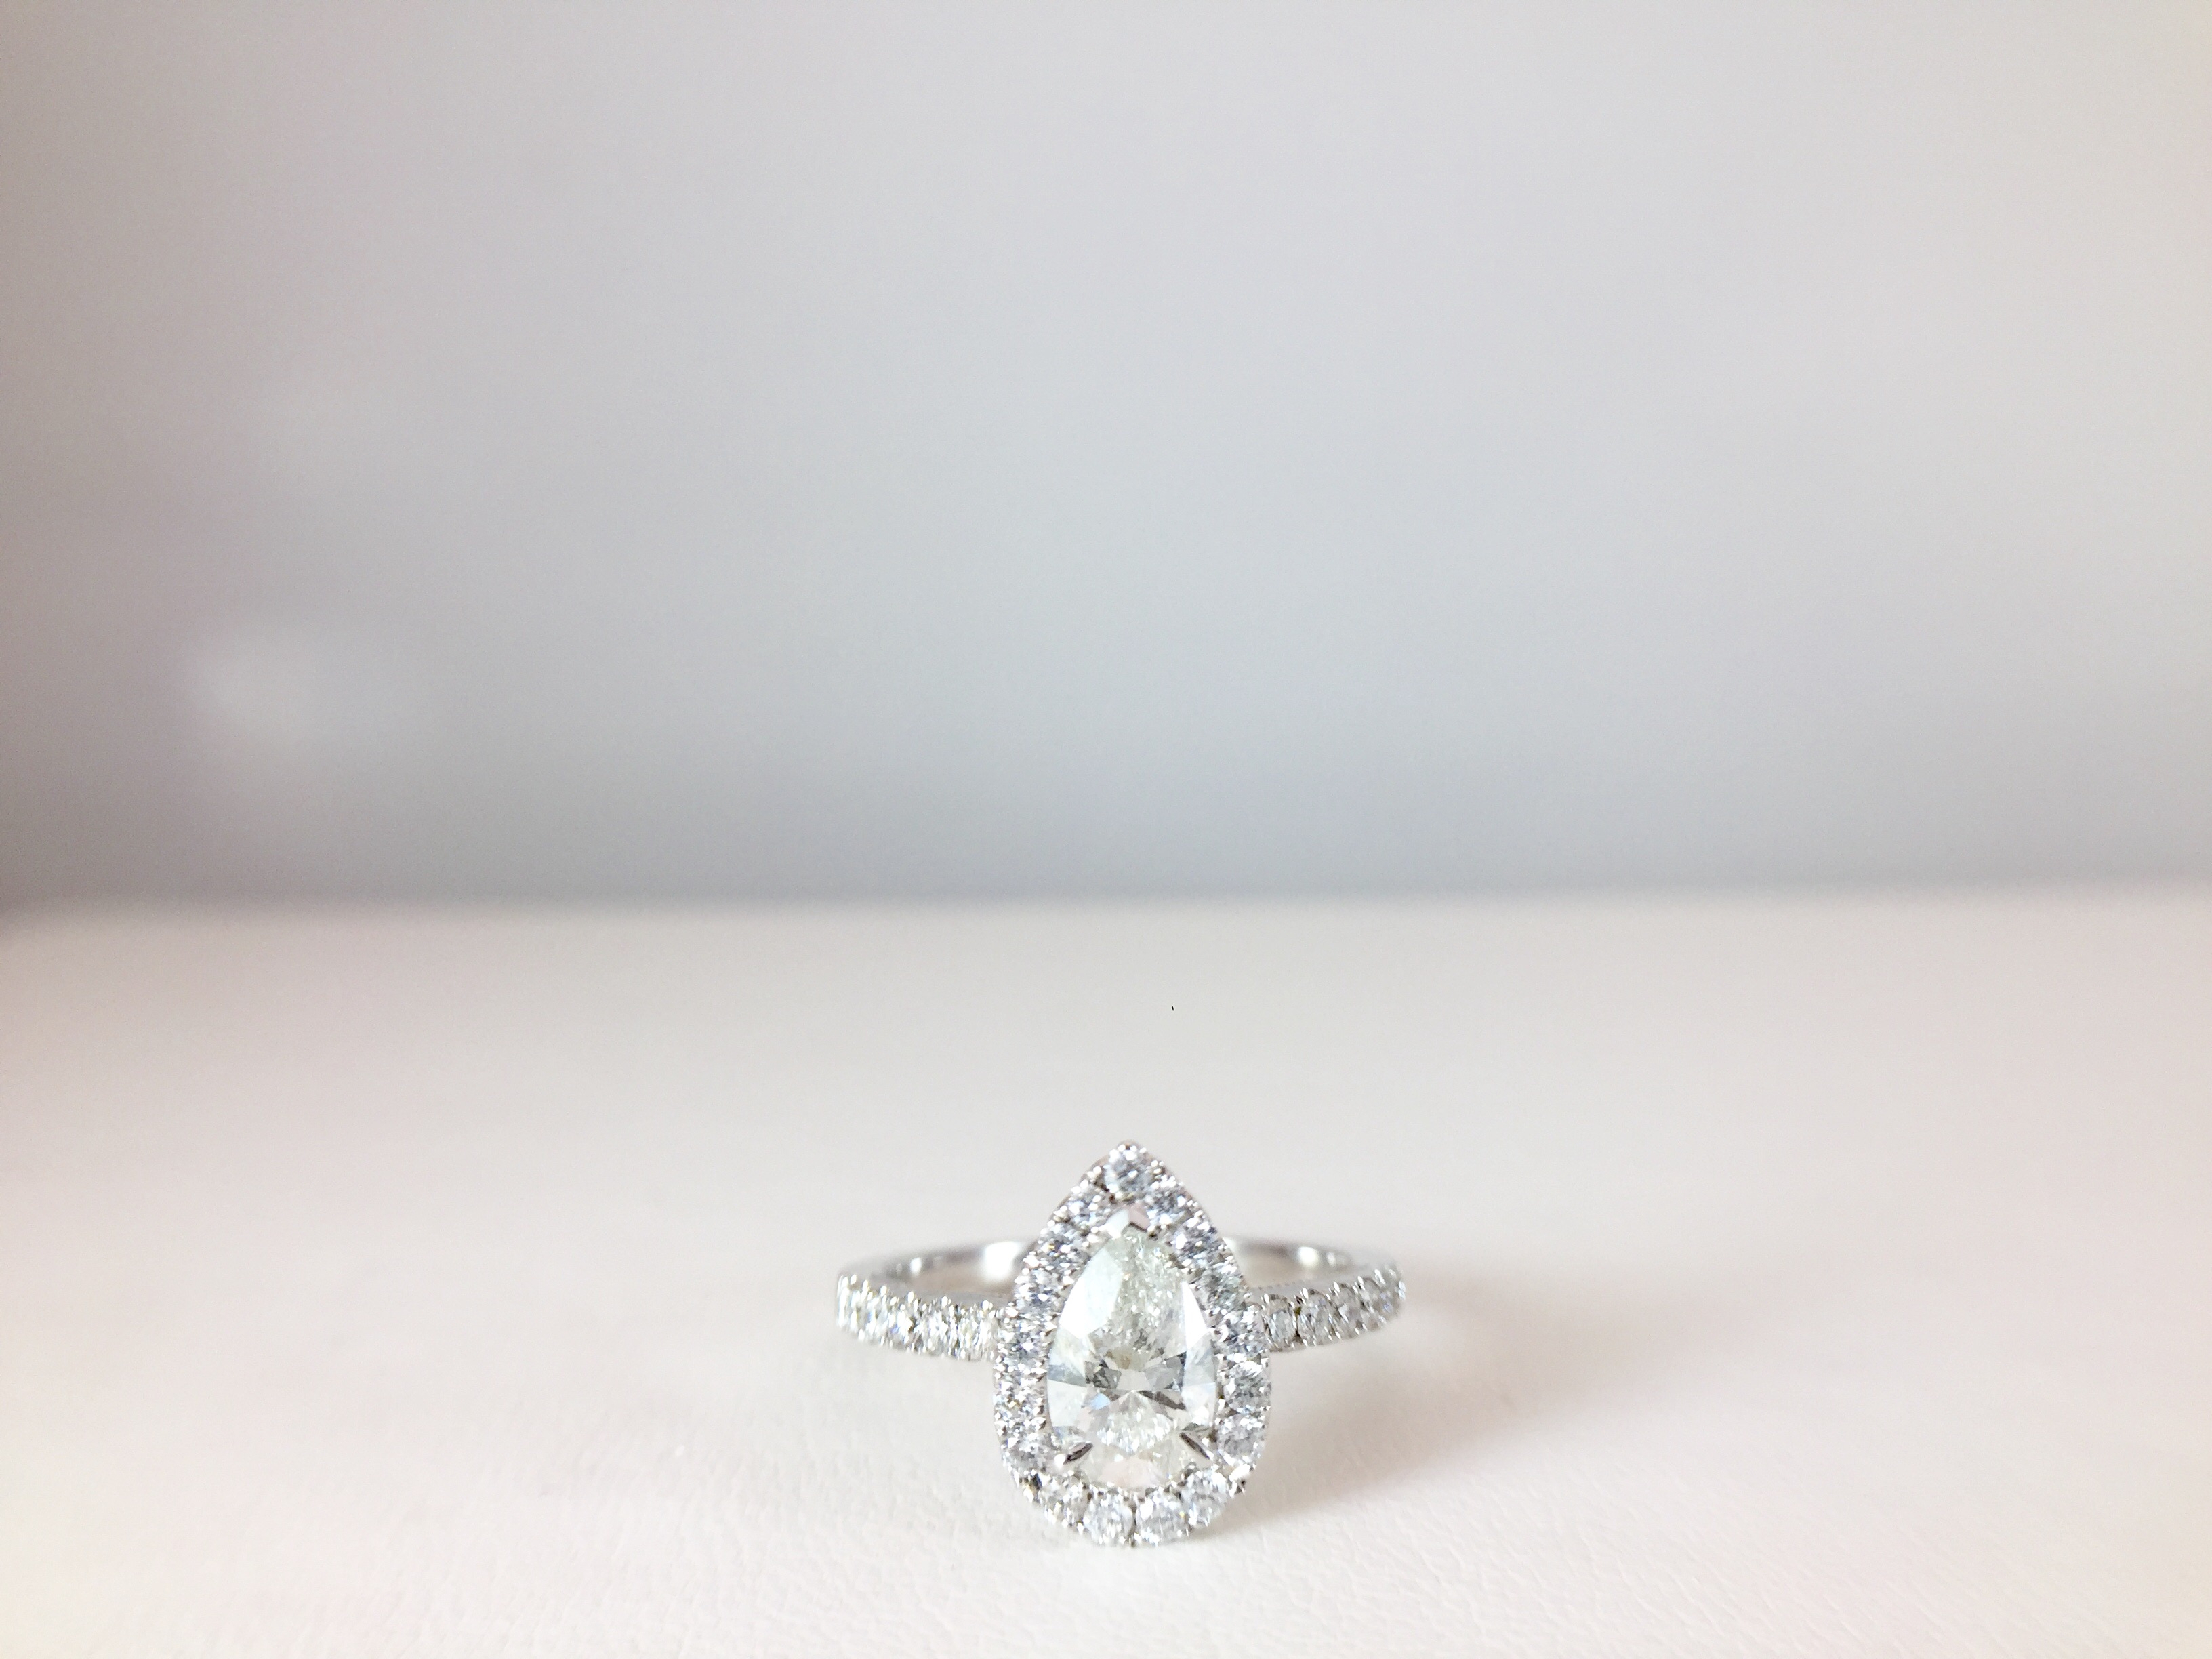 Pear Shape Diamond Ring With Halo | Bennion Jewelers With Tryst Pear Shaped Diamond Engagement Rings (Gallery 23 of 25)